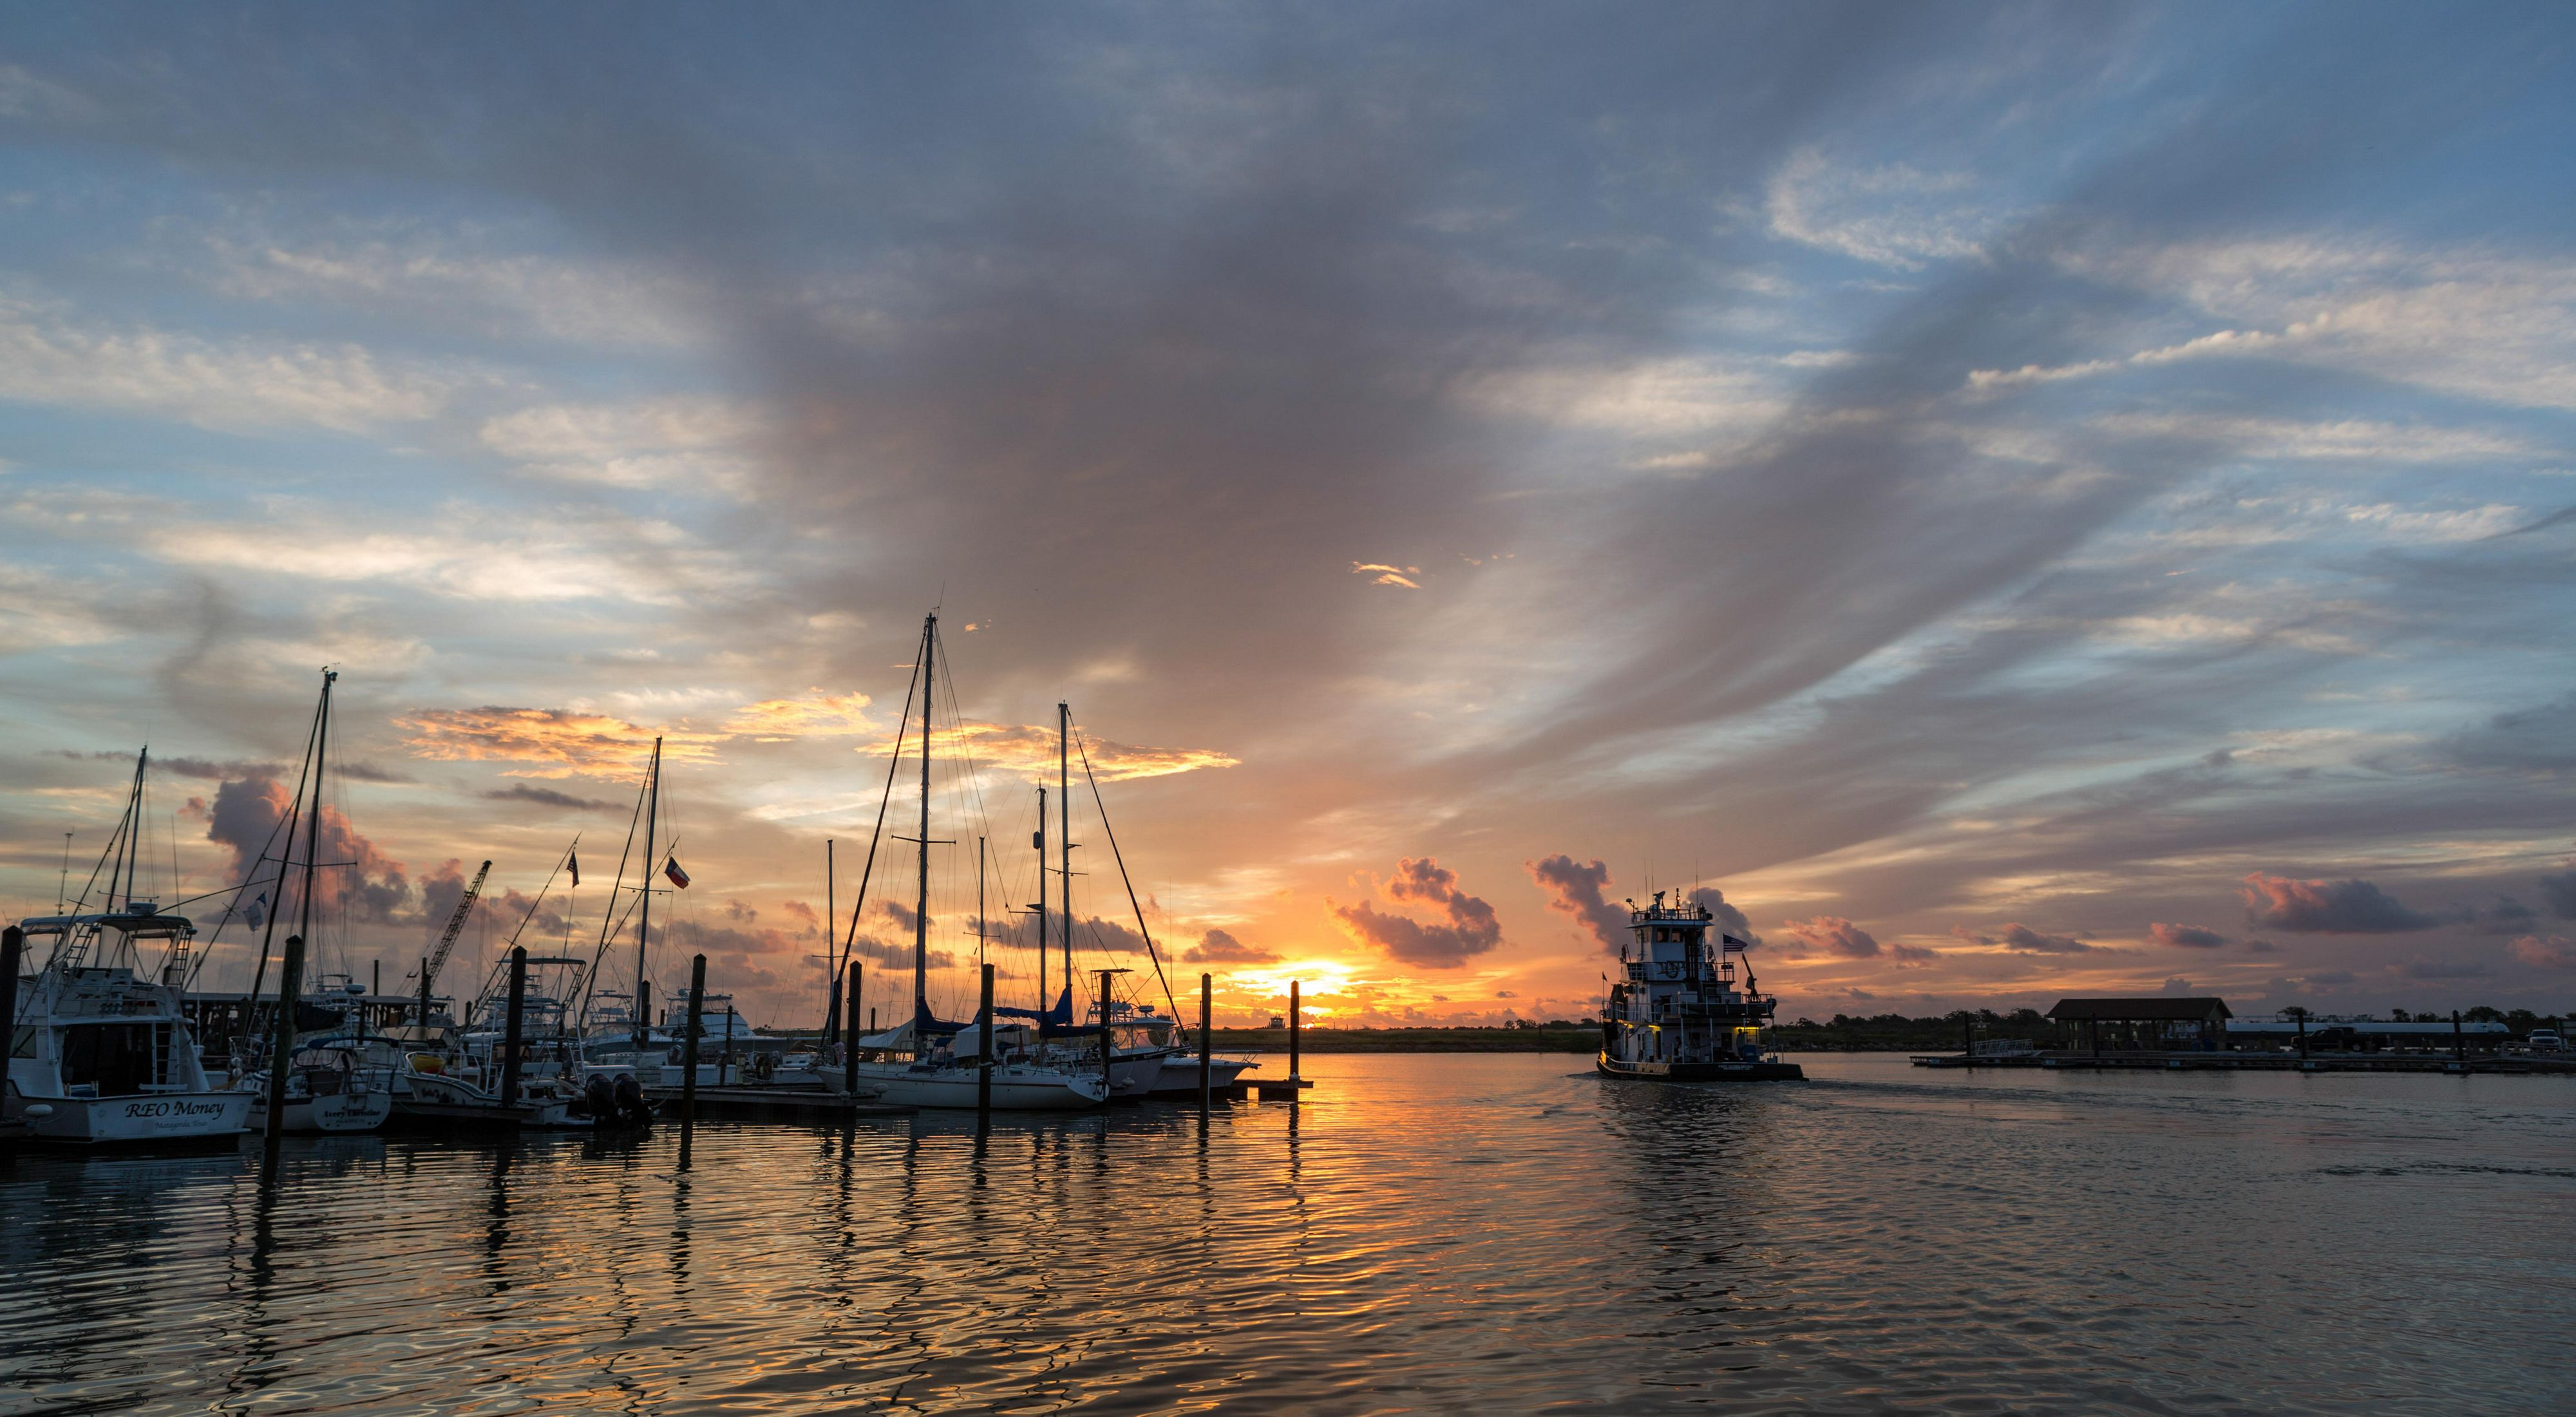 A marina full of sailboats with an orange and pink sunset behind it in a cloud-streaked sky.